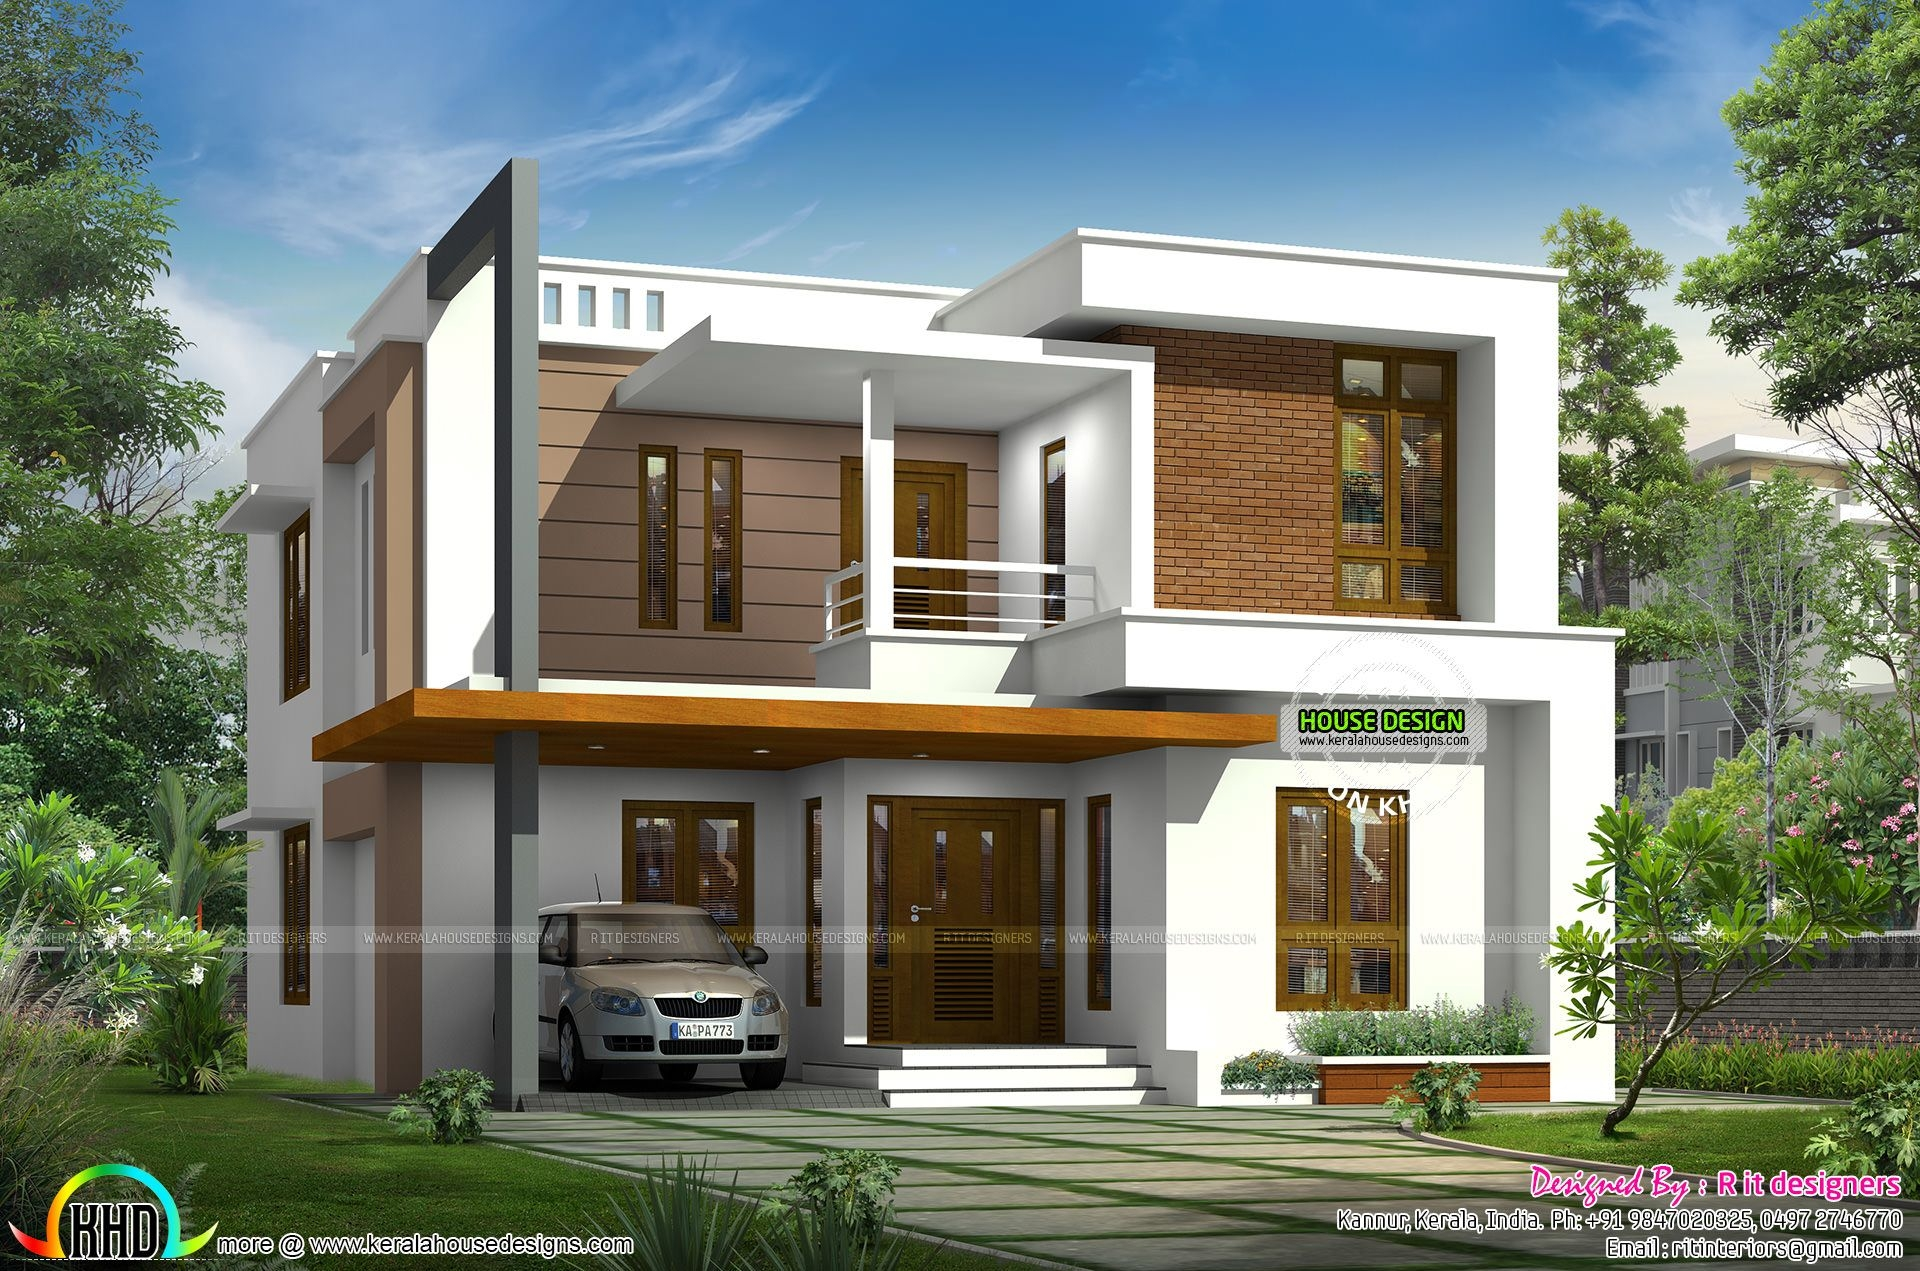 2132 Sqft Modern 4 Bedroom House  Kerala Home Design And Floor Plans